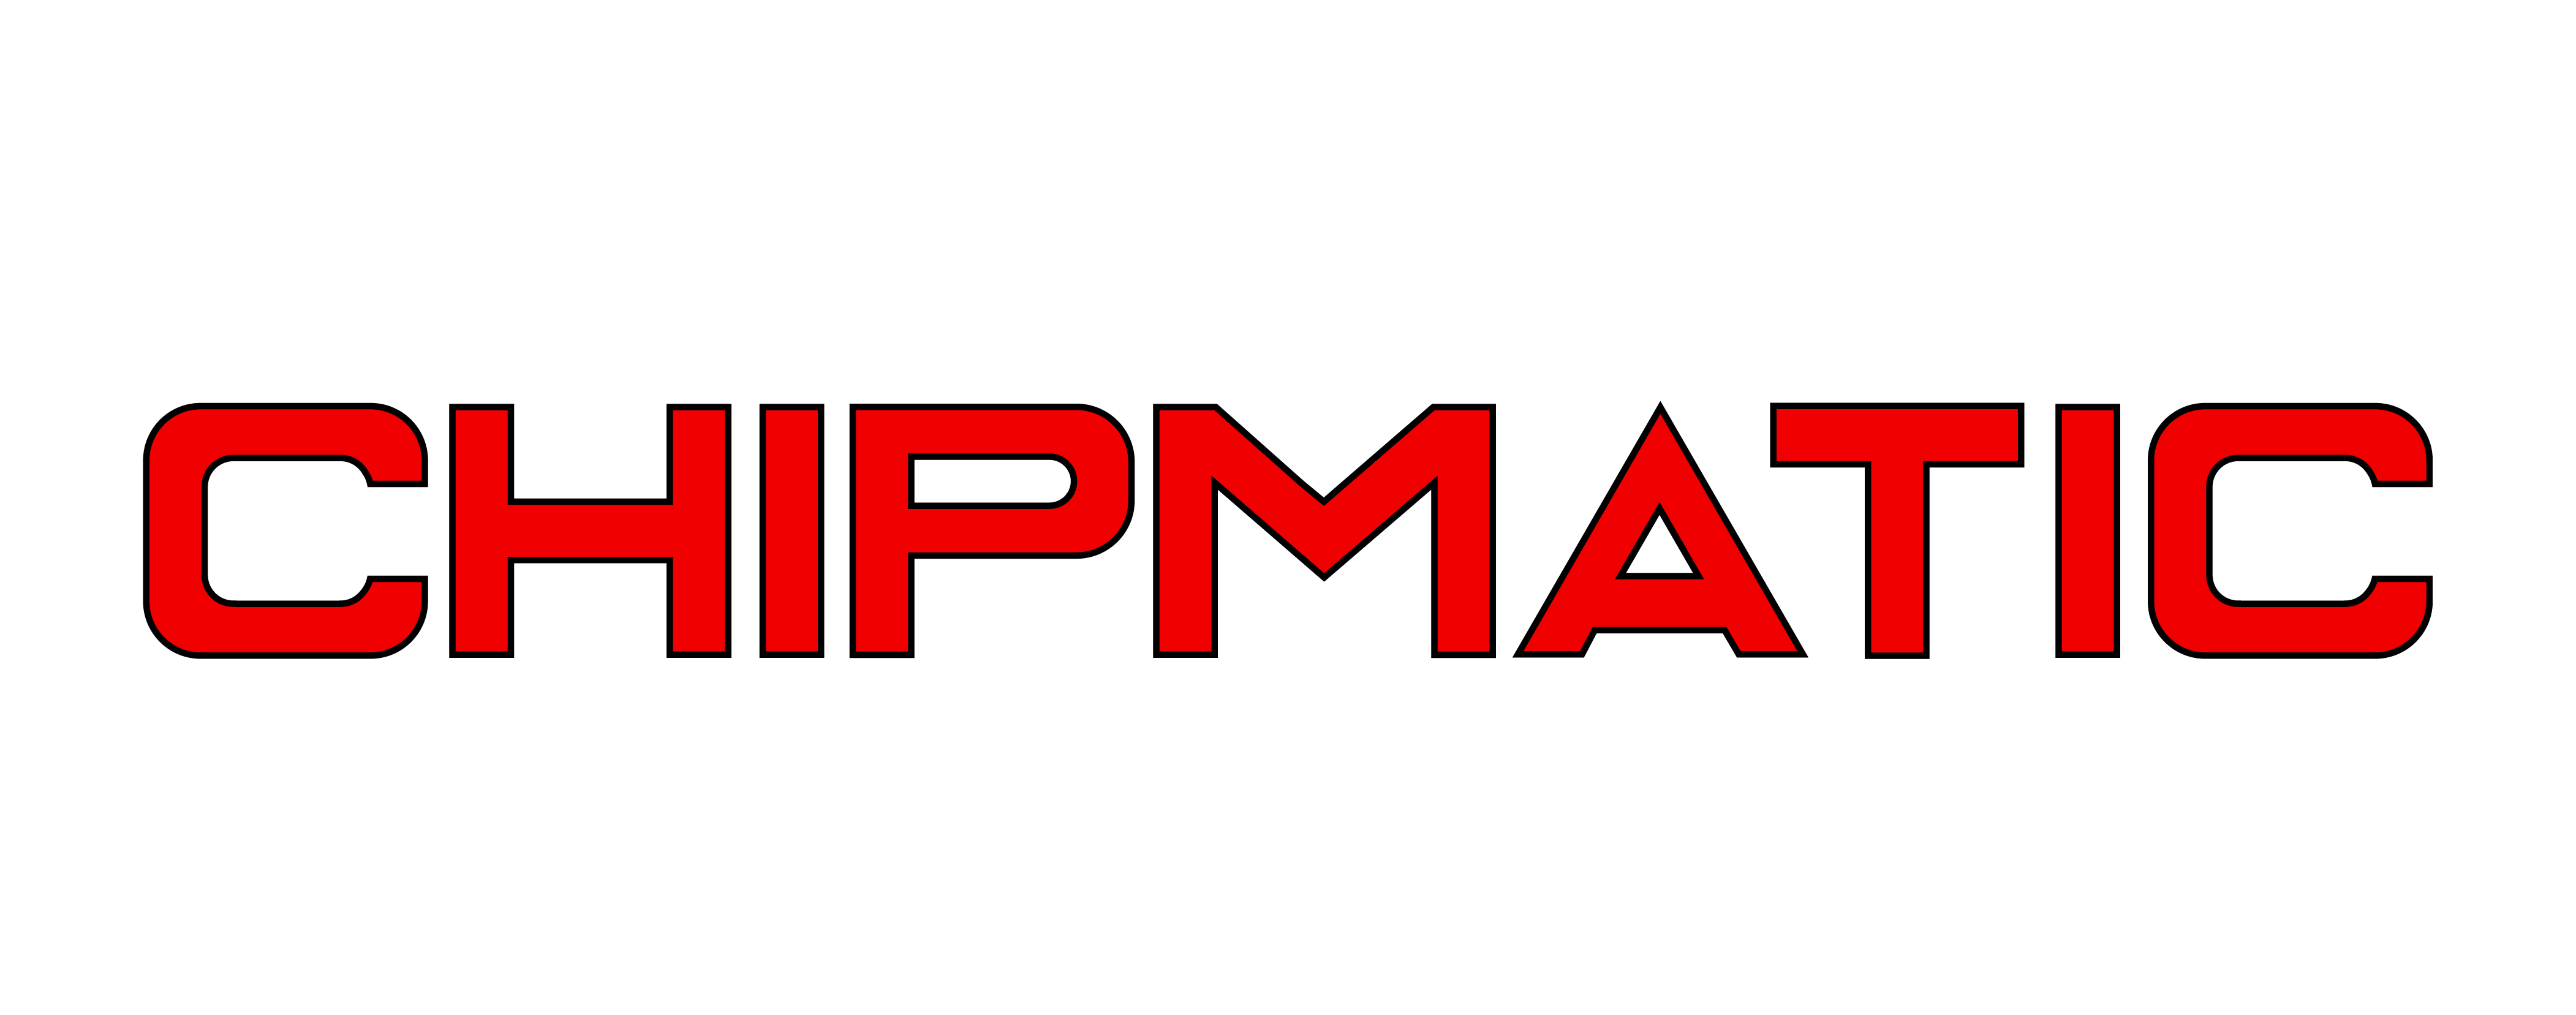 THE CHIPMATIC COMPANY Logo